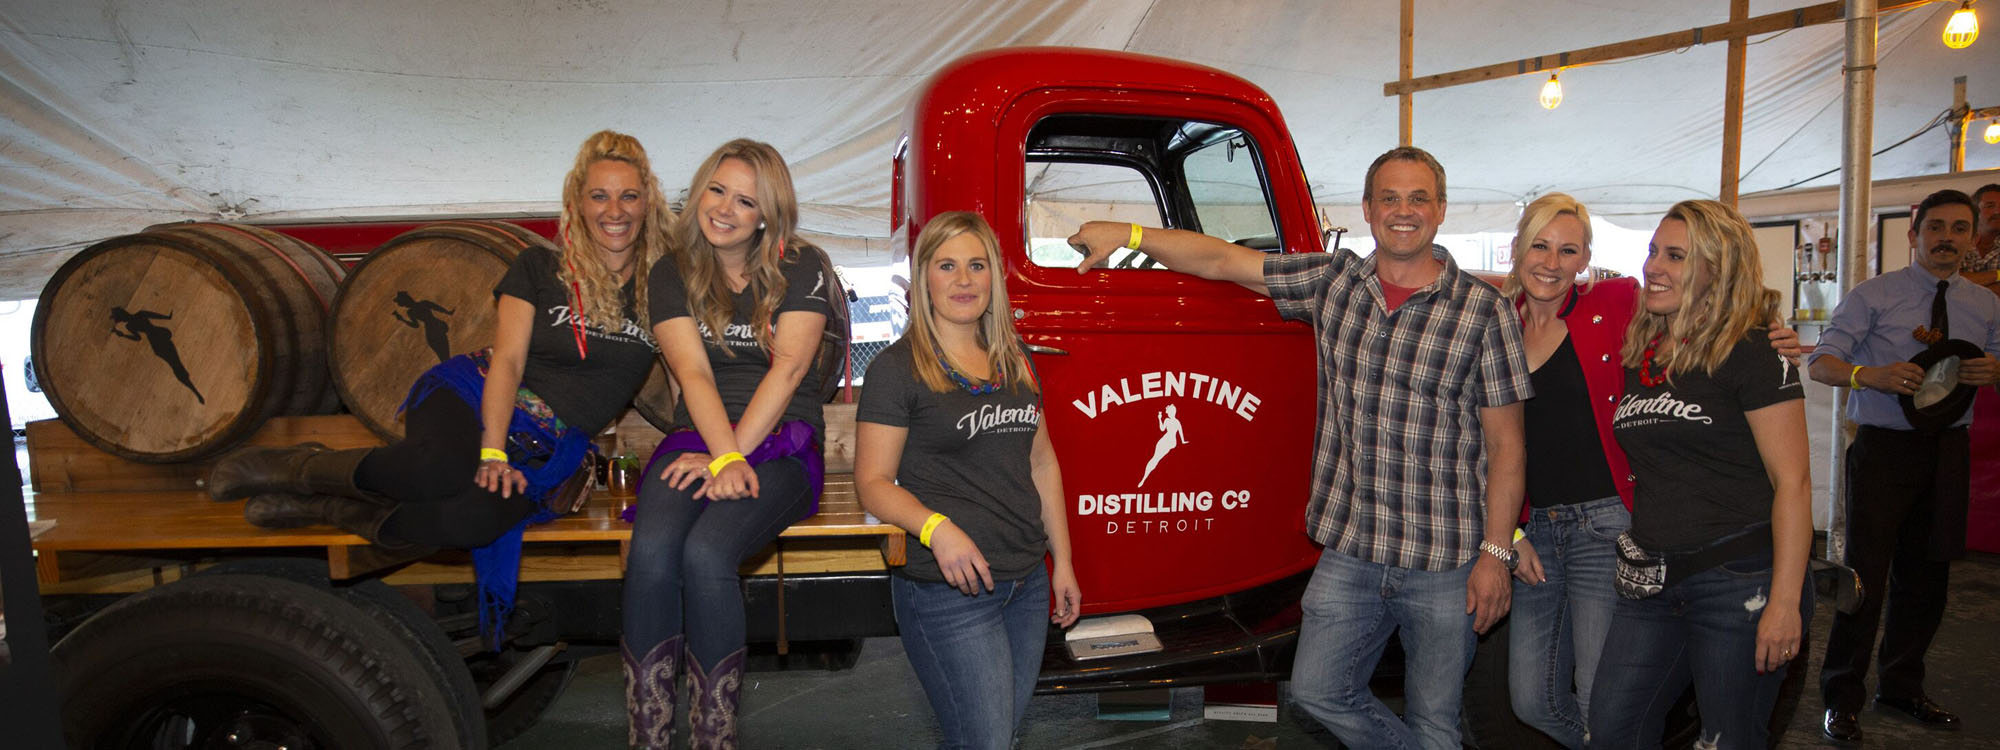 Valentine Distilling Co at Cedar Polka Fest